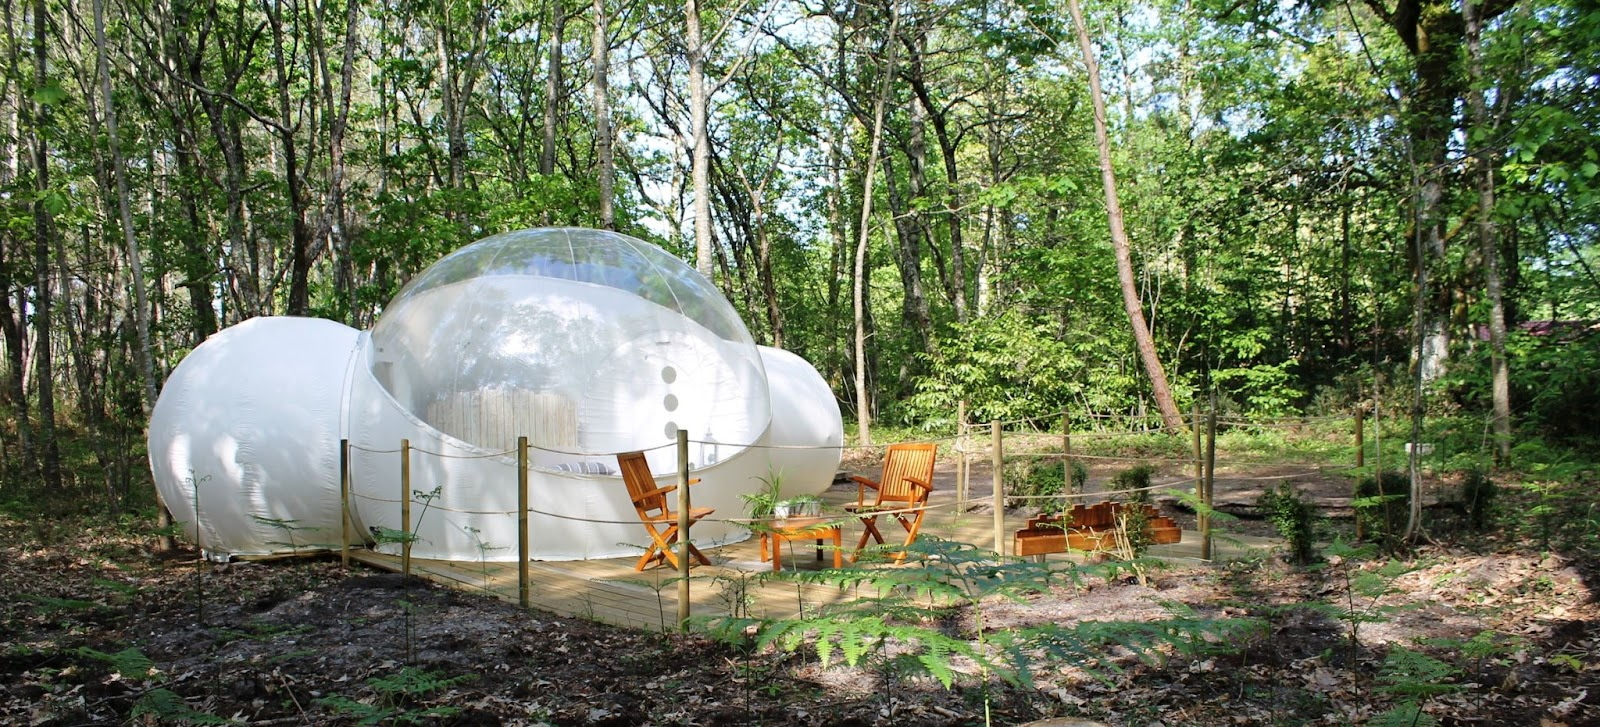 Where to go camping bubble tent Campspace France